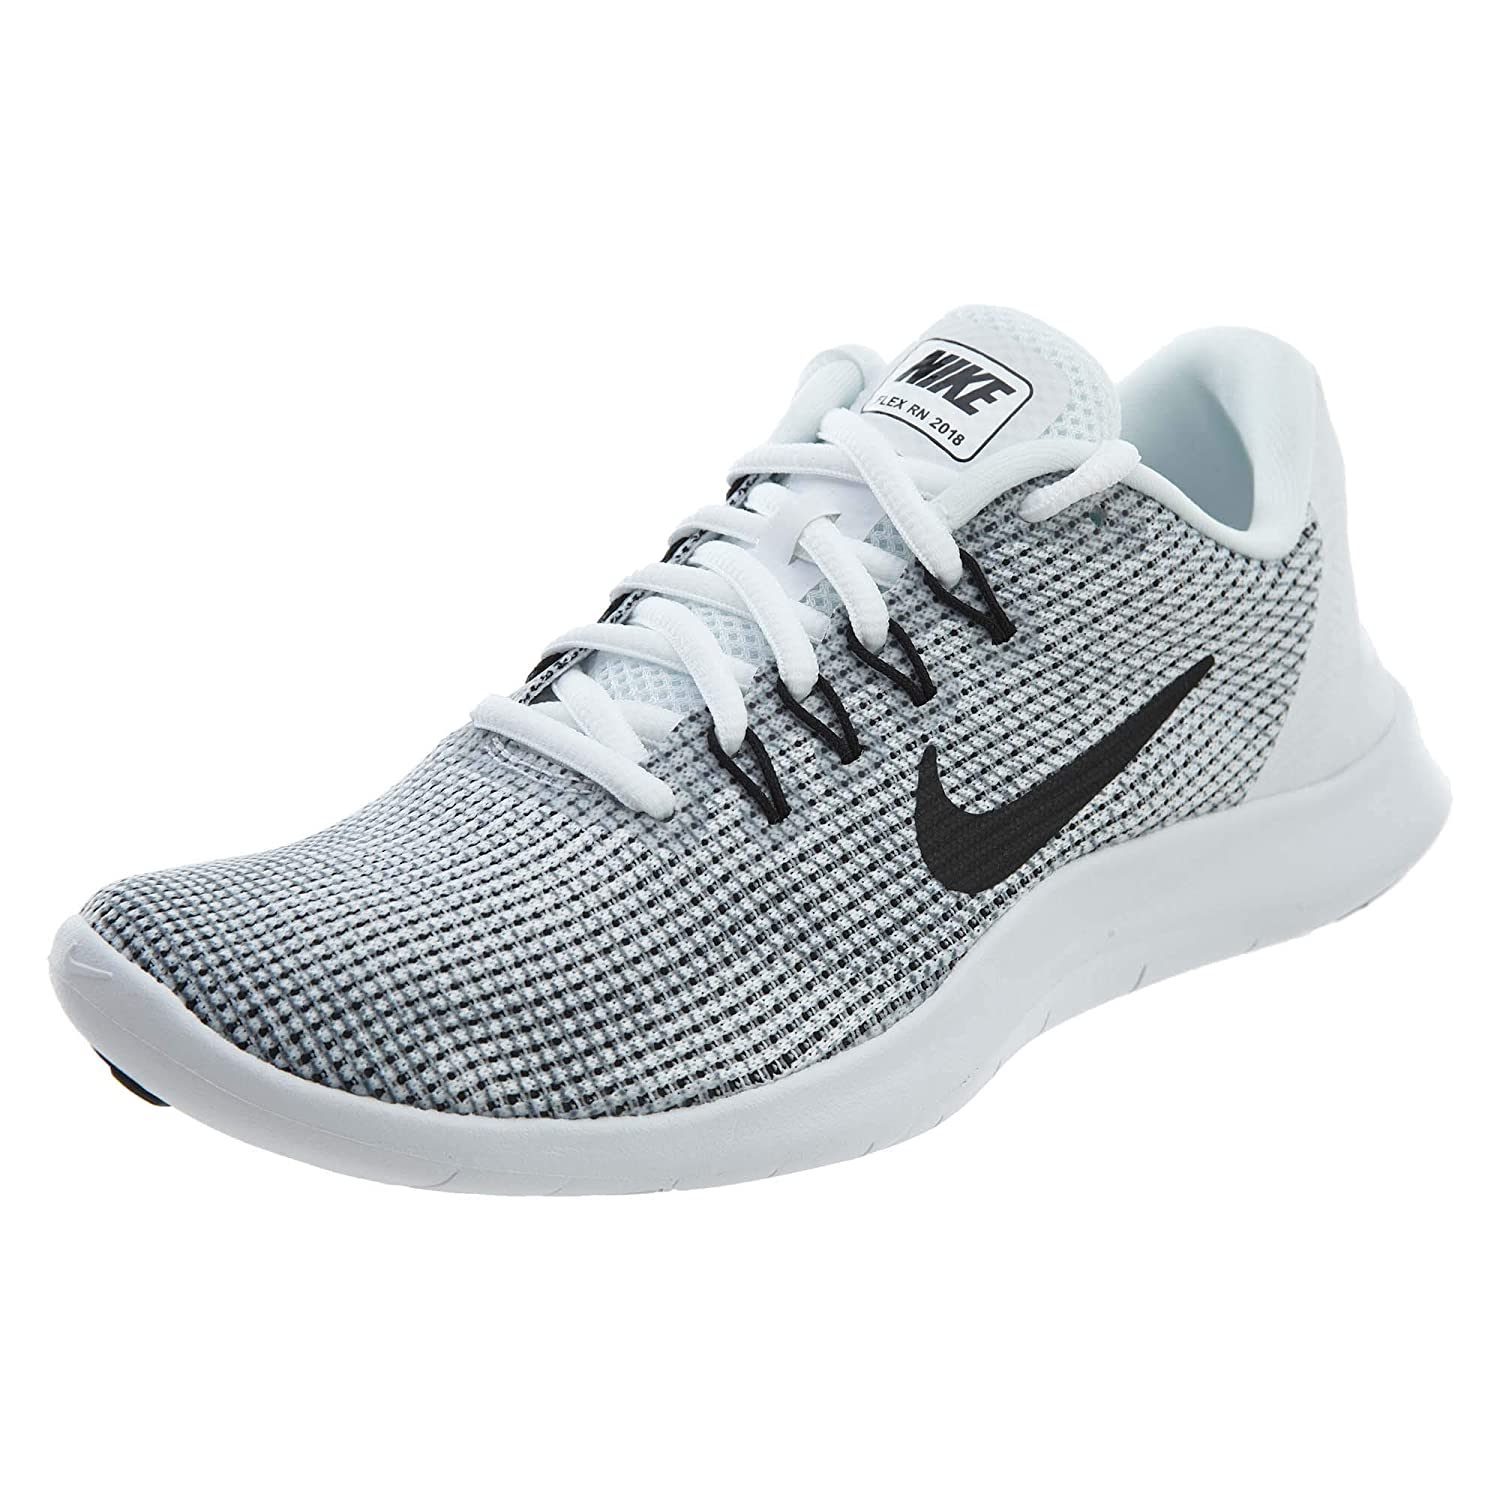 White Black-cool Grey Nike Men's Flex 2018 Rn Running shoes